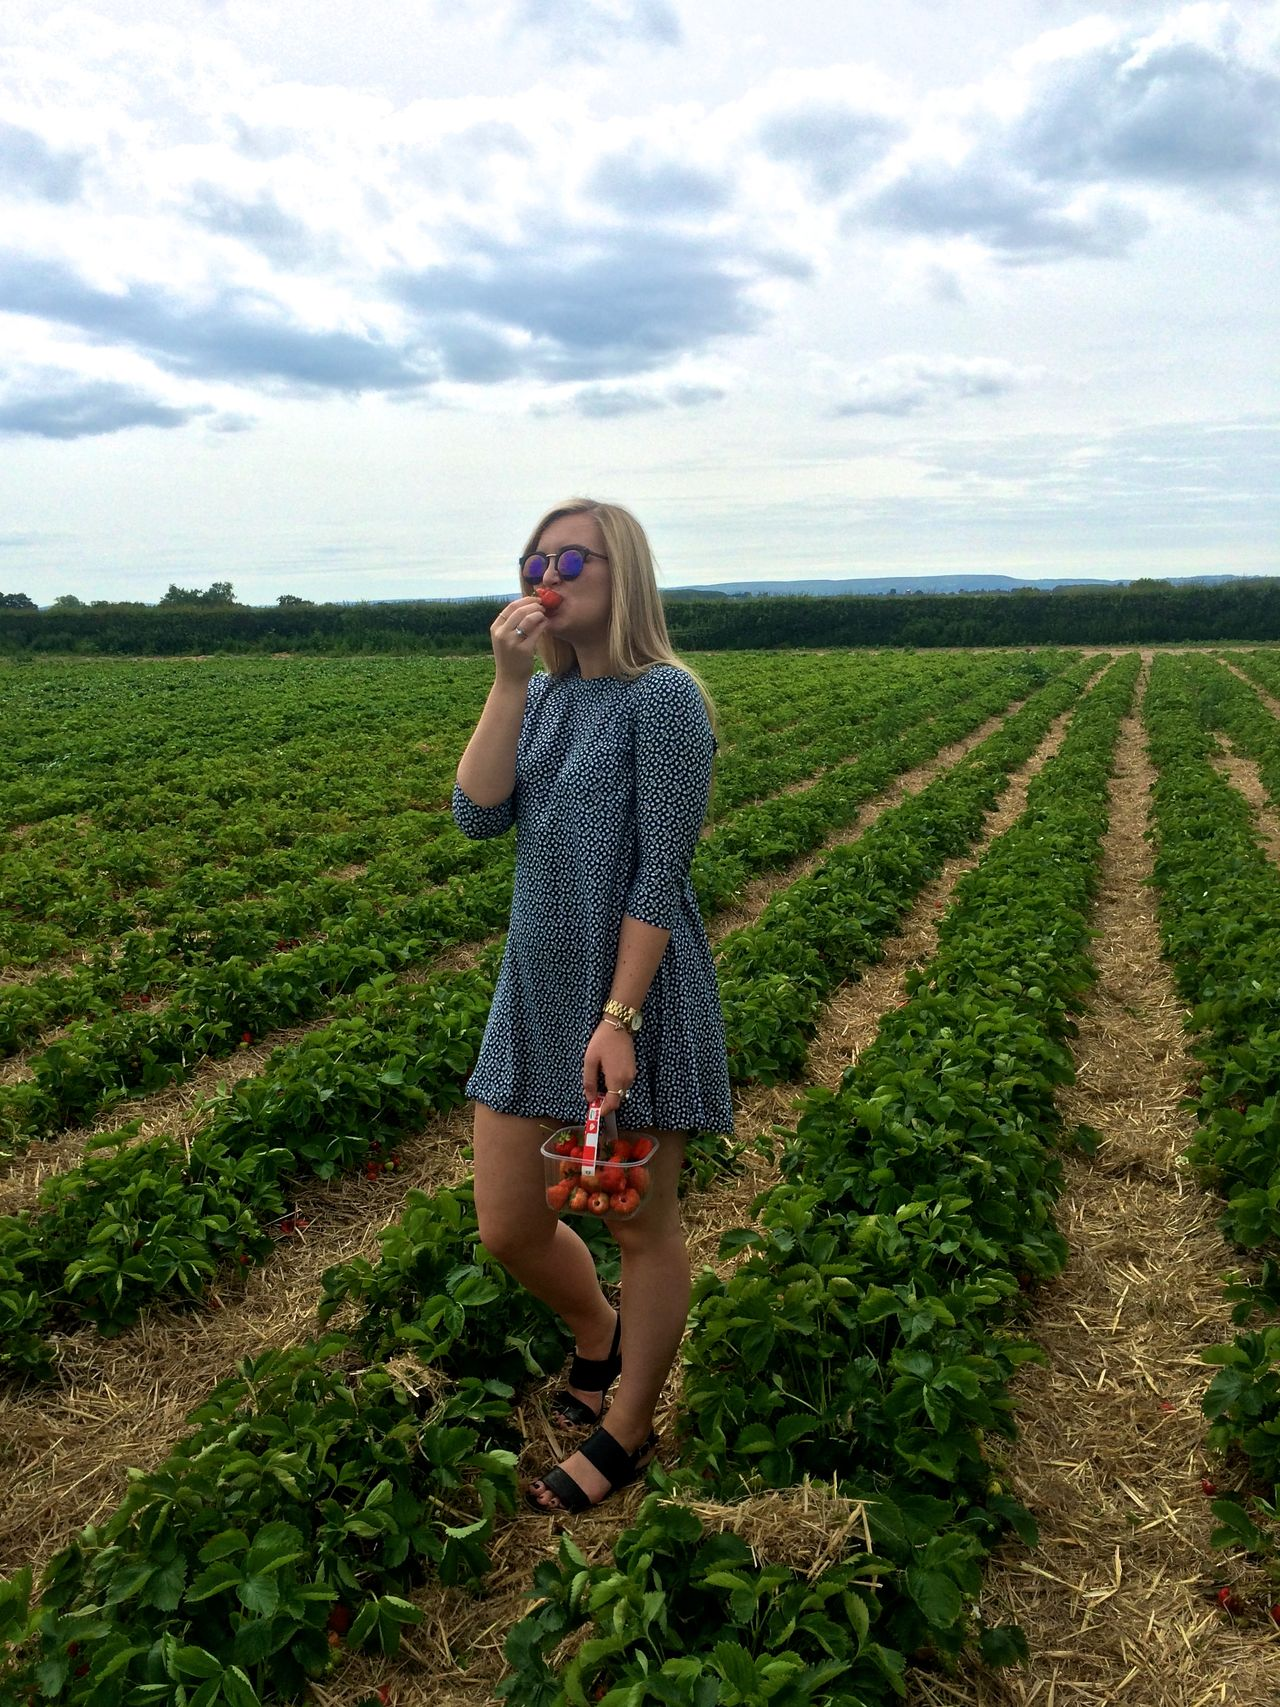 Beautiful stock photos of obst,  18-19 Years,  Basket,  Beauty In Nature,  Casual Clothing